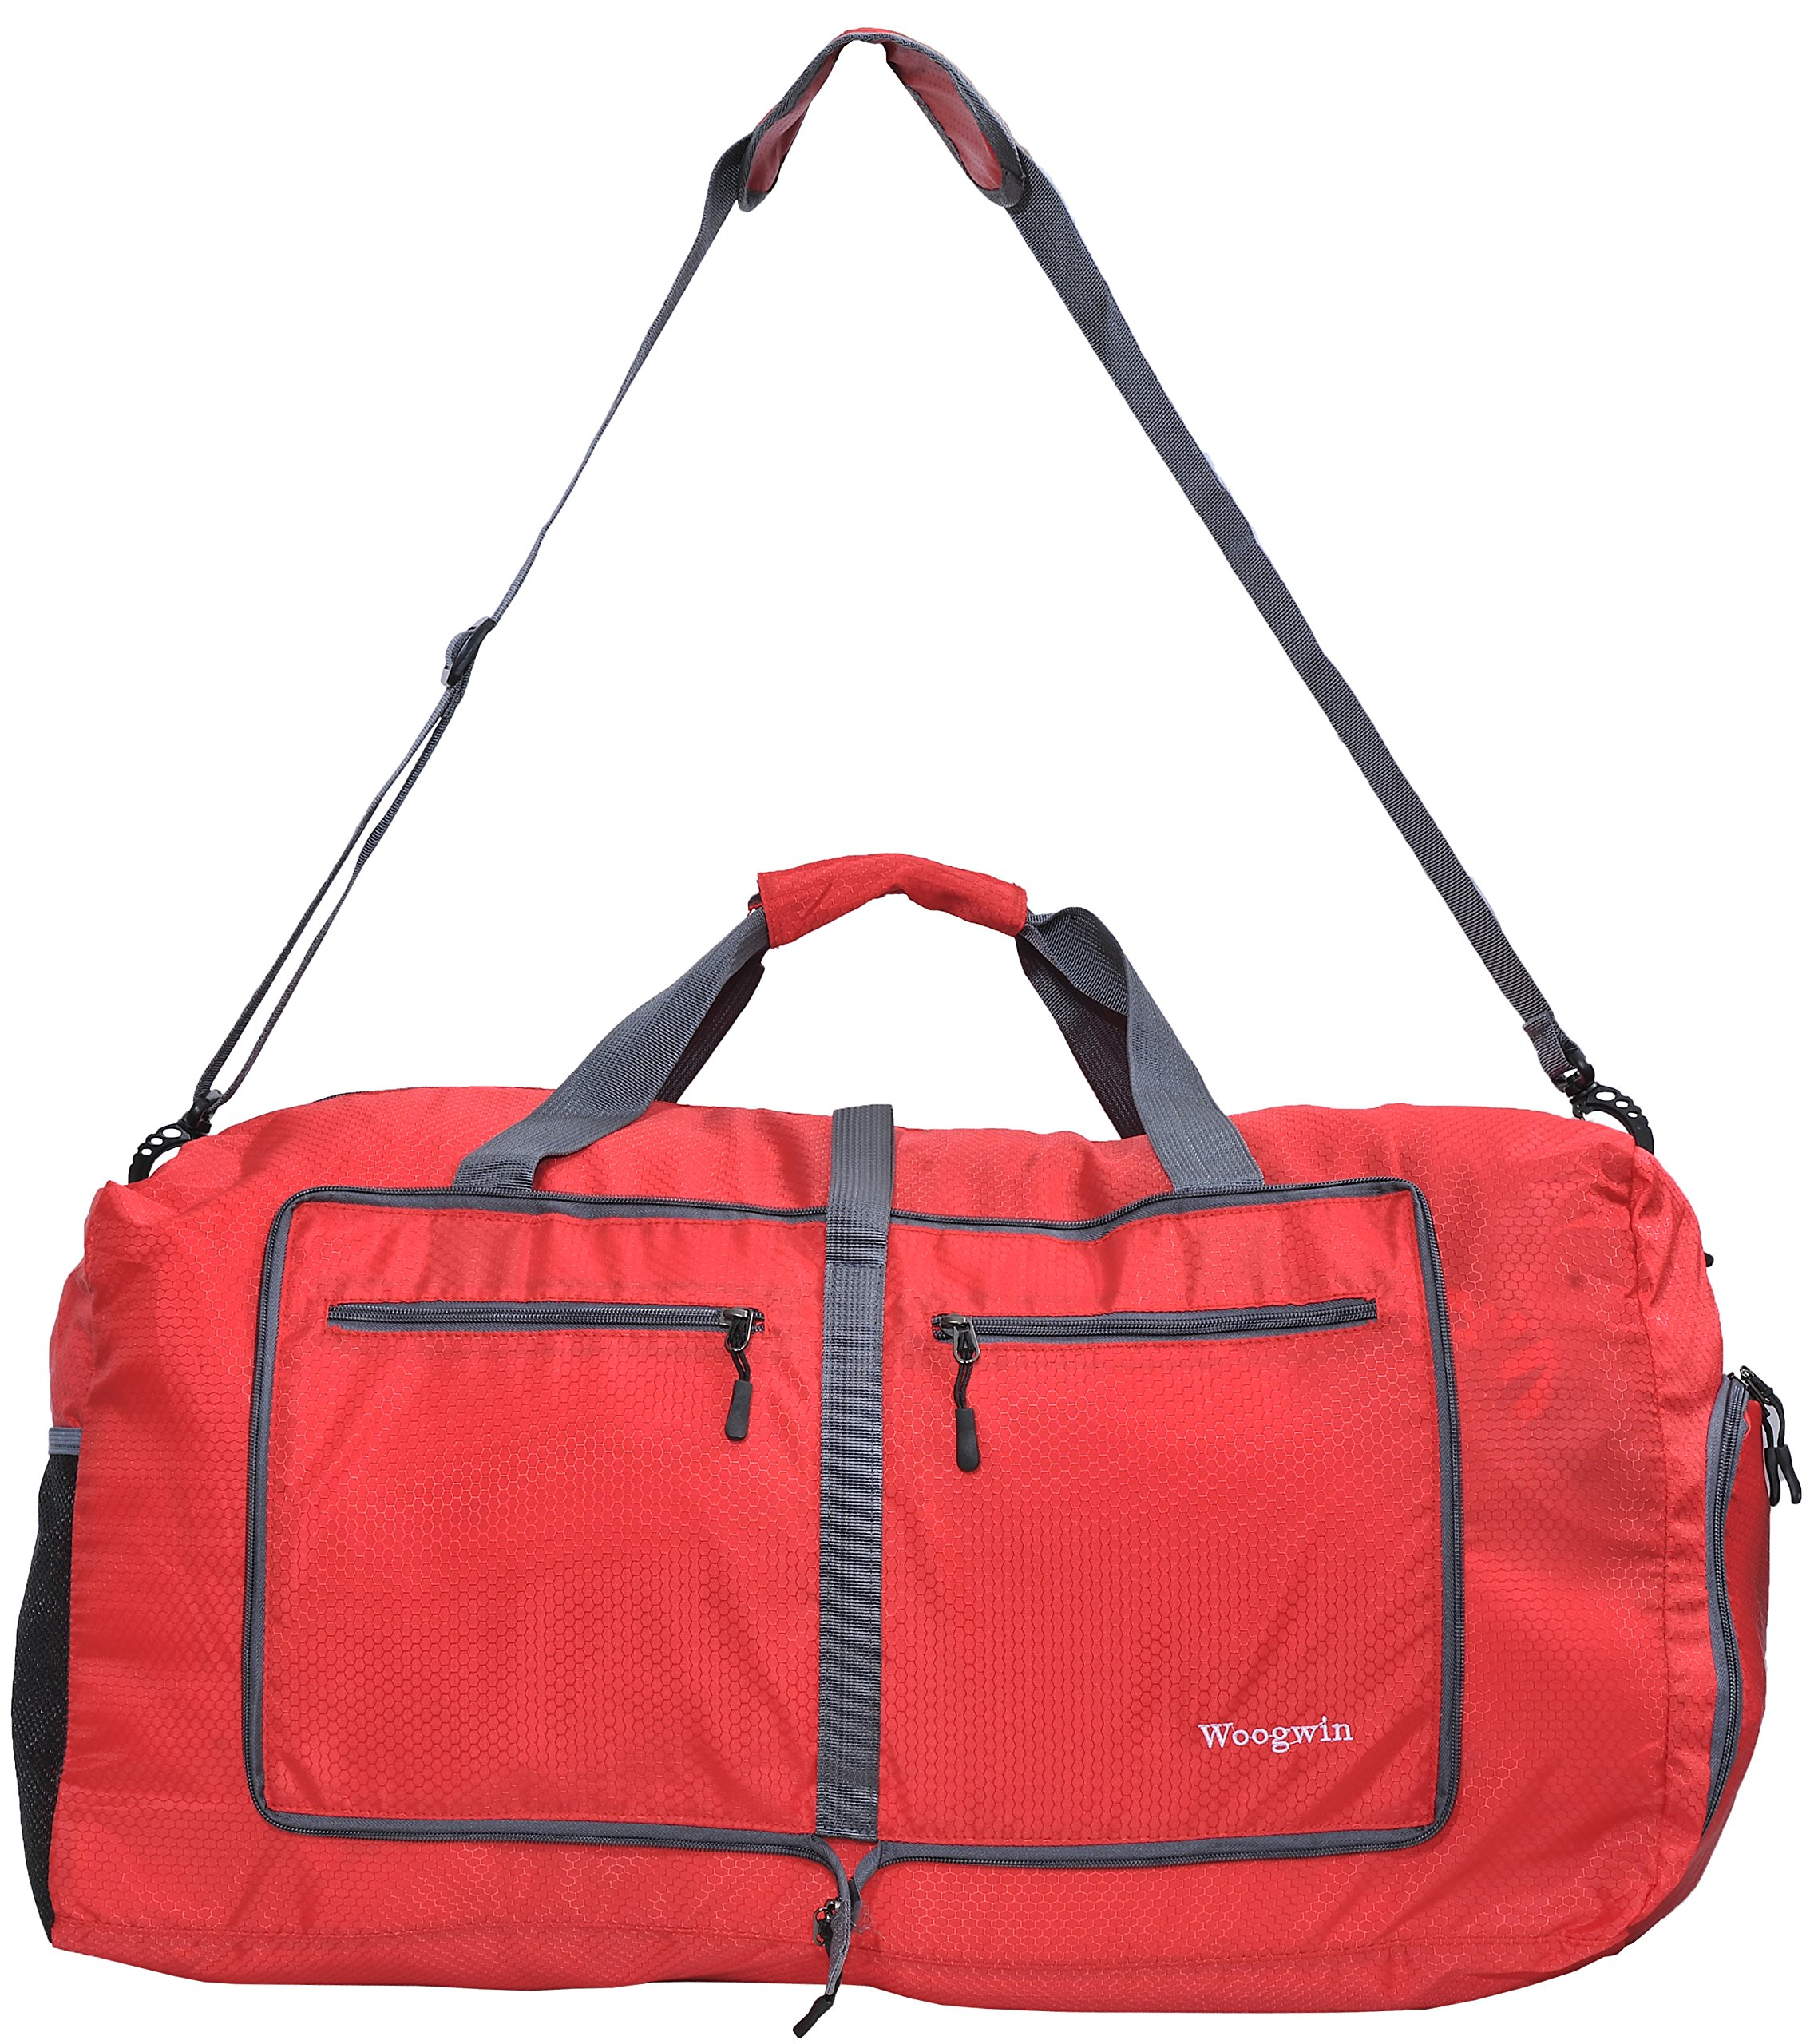 Woogwin Womens & Mens Travel Duffel Bag 60L Foldable Duffle Bags For Luggage Gym Sports (Red)